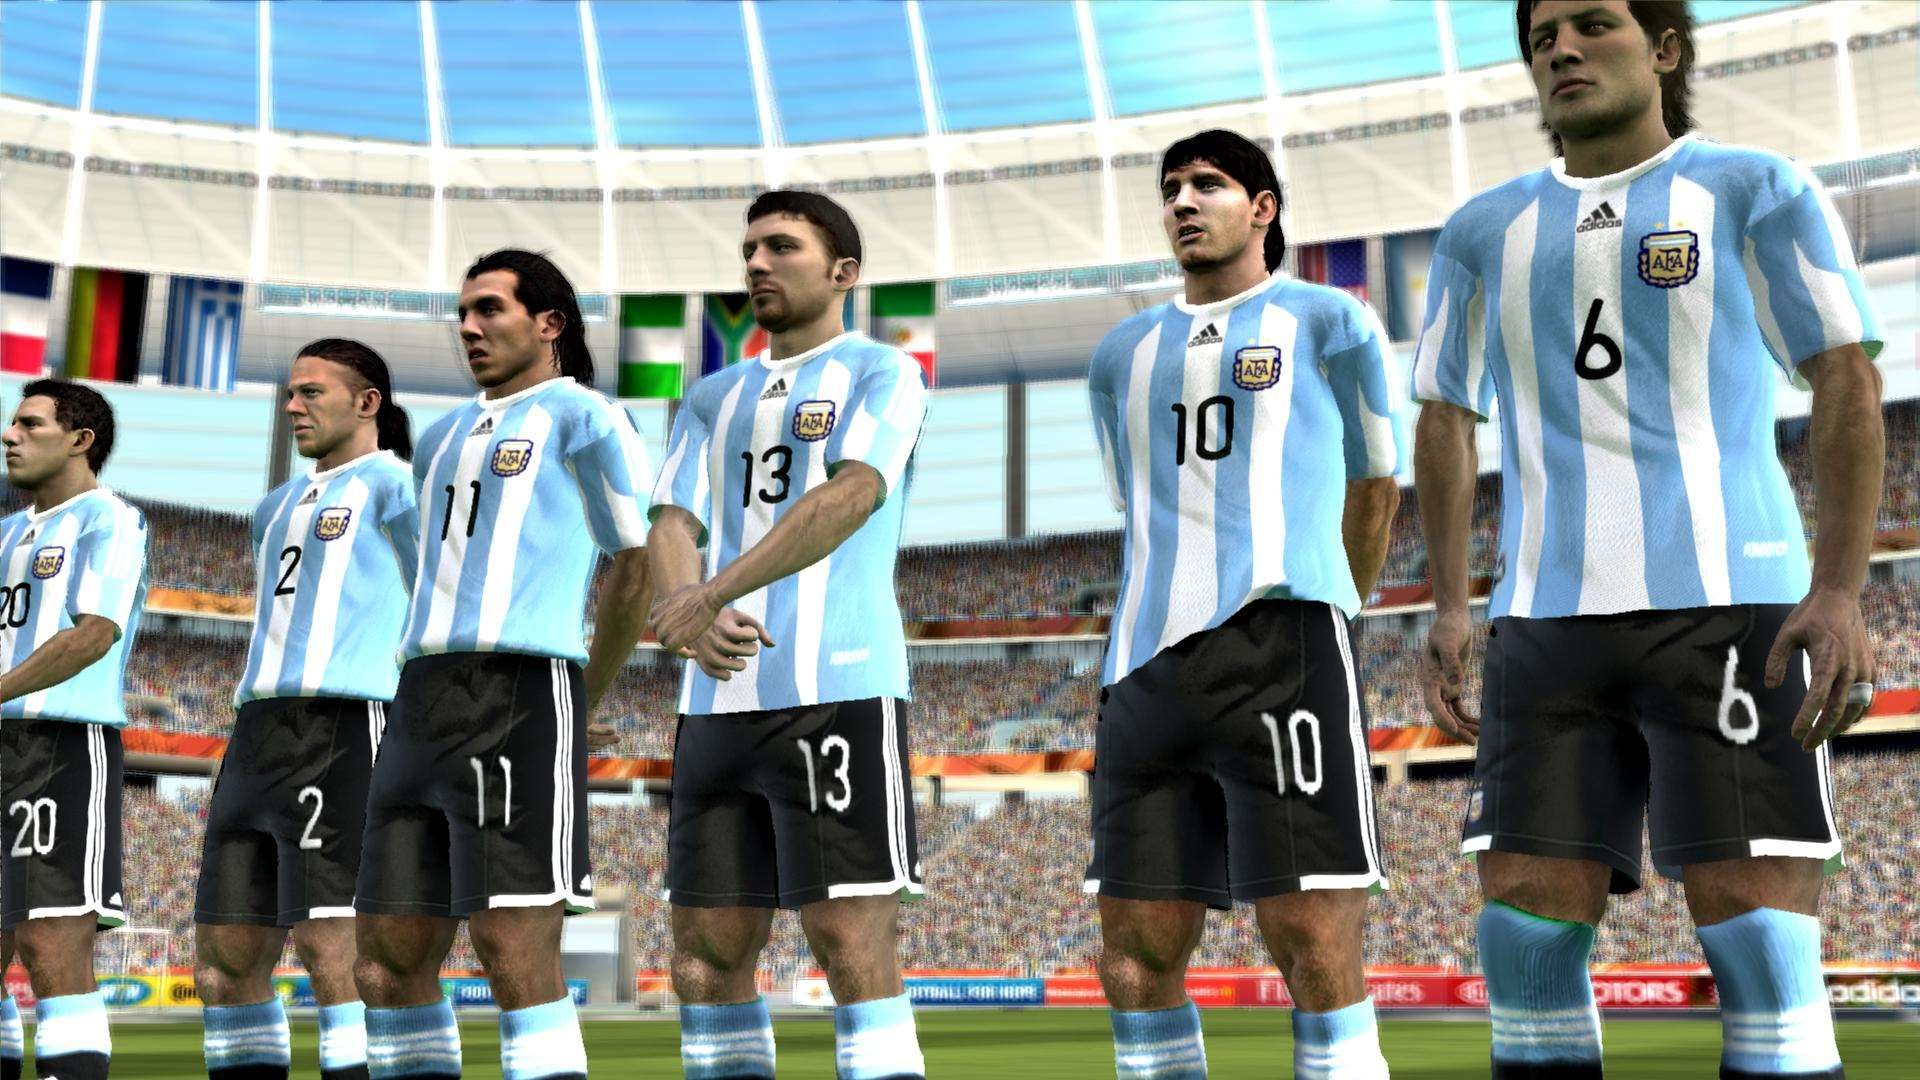 fifa world cup 2010 game free download full version pc